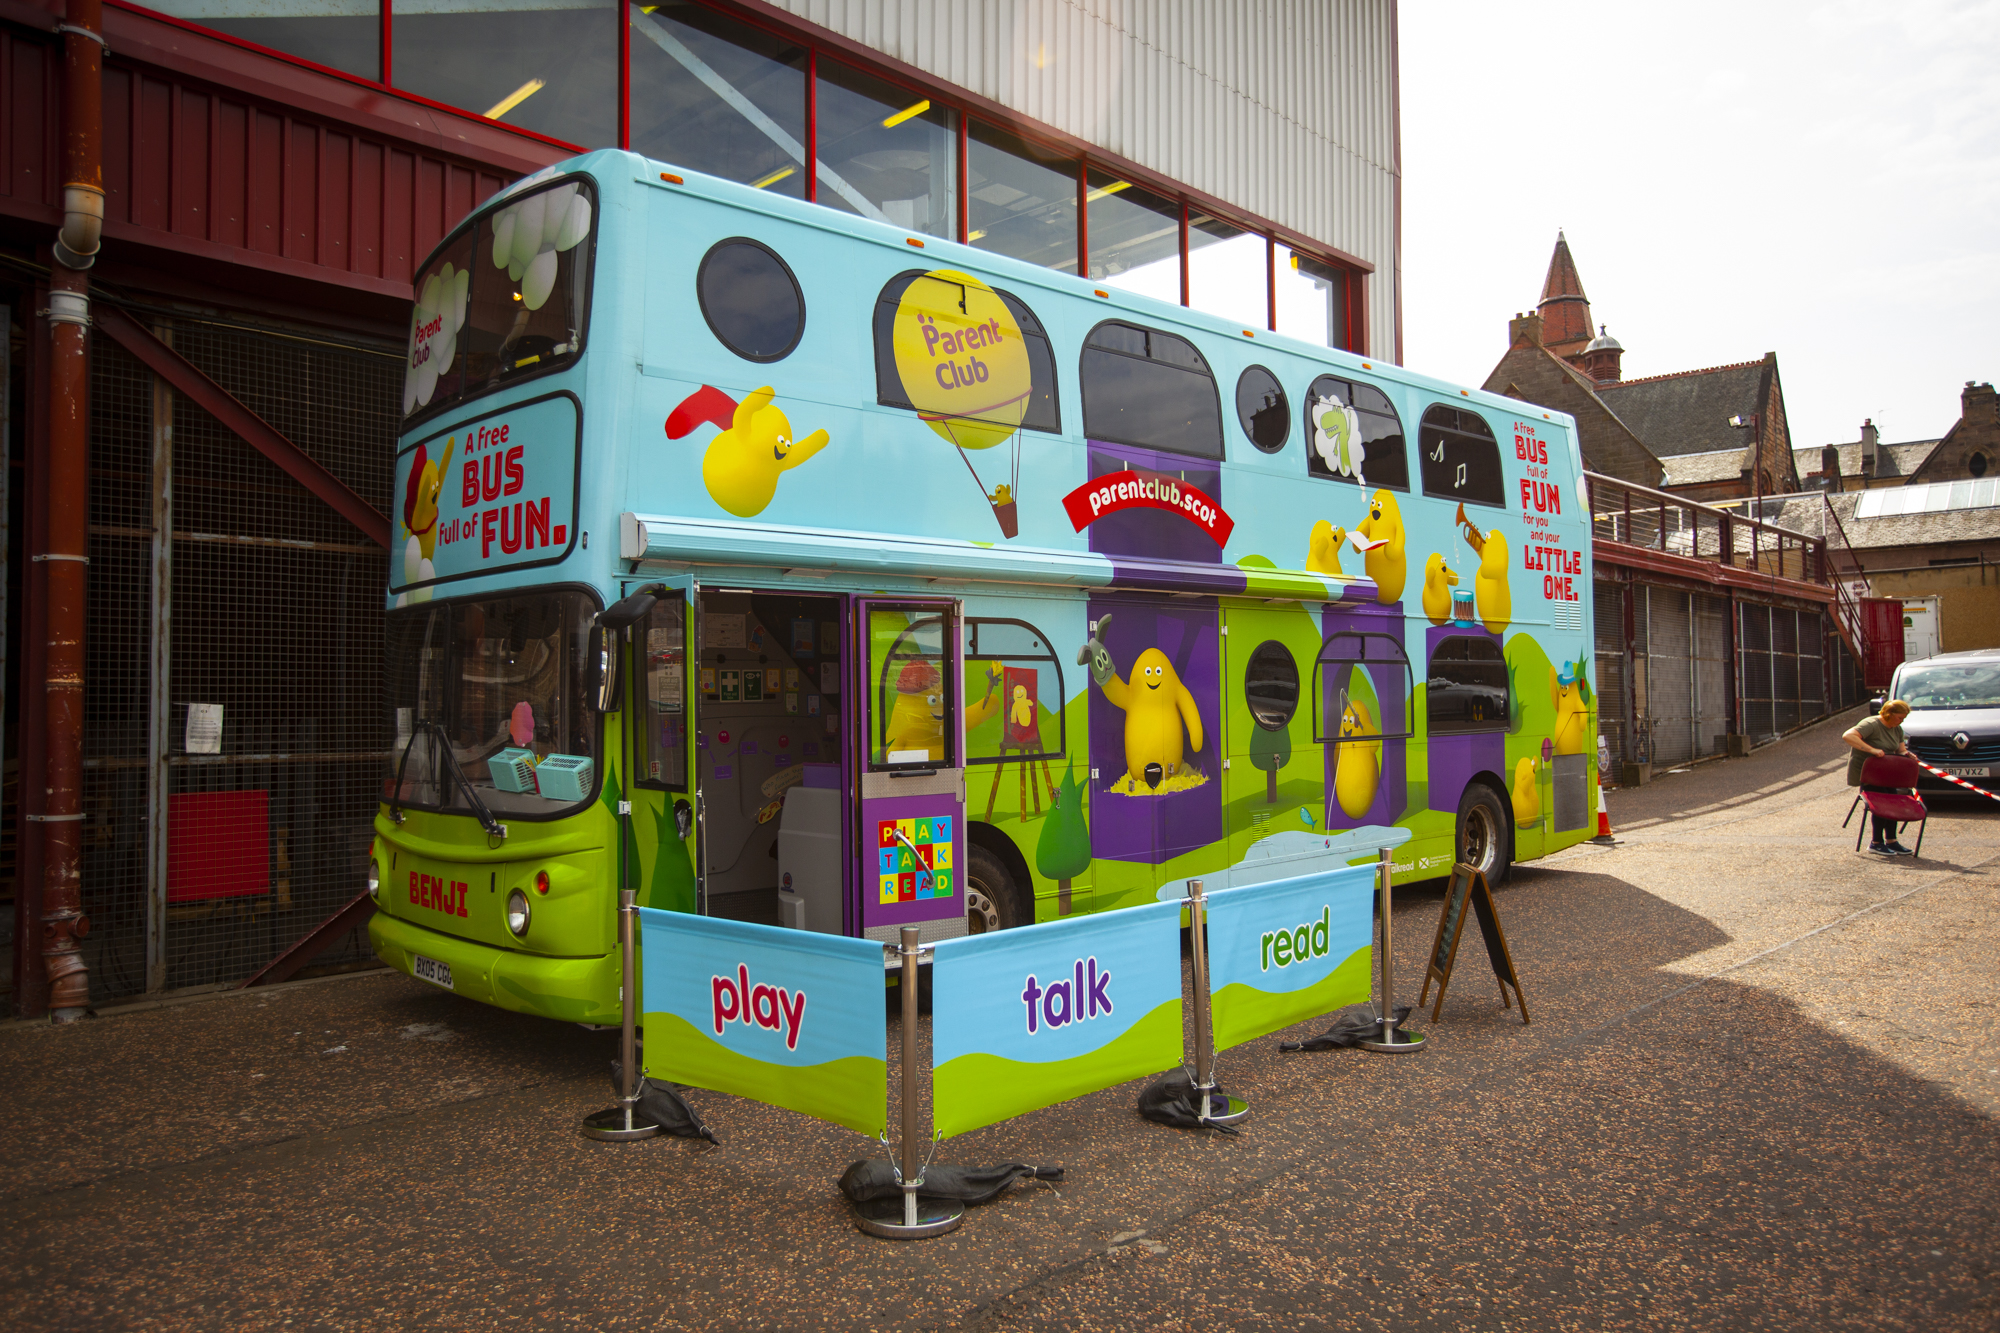 The awesome  Play Talk Read  bus was on the scene.